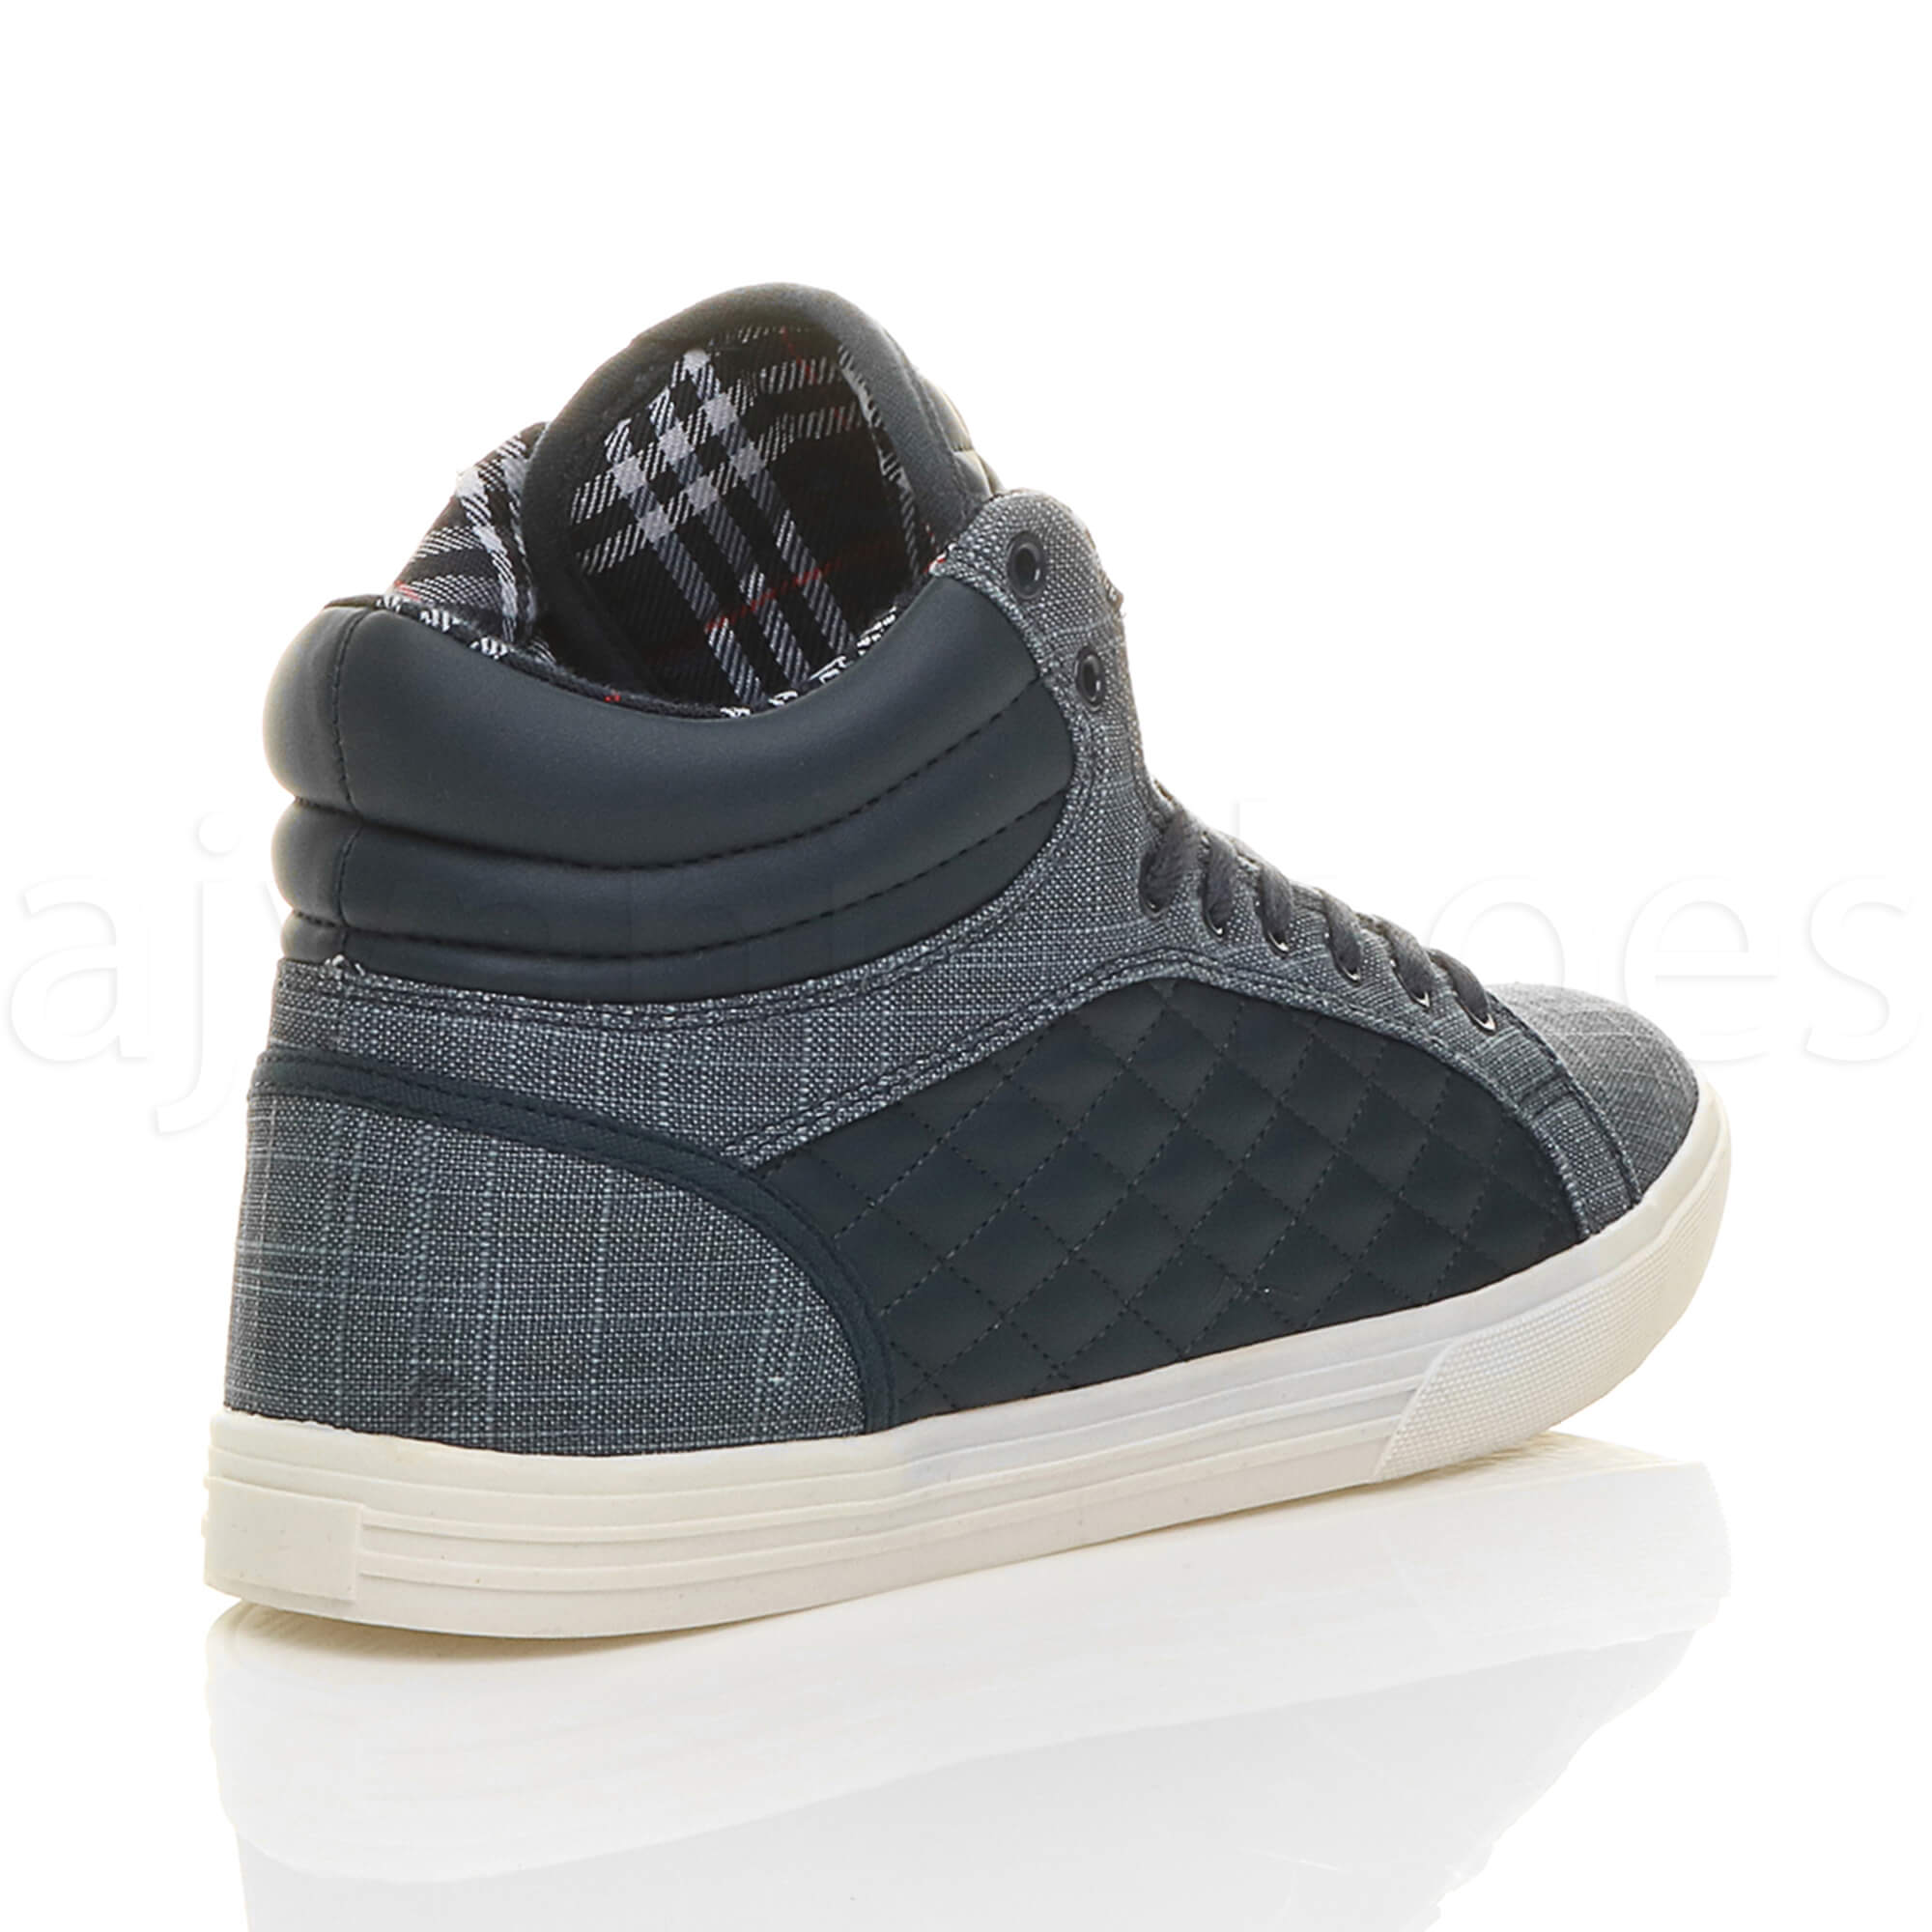 MENS-QUILTED-LACE-UP-FLAT-CASUAL-HI-HIGH-TOP-TRAINERS-SHOES-ANKLE-BOOTS-SIZE thumbnail 26